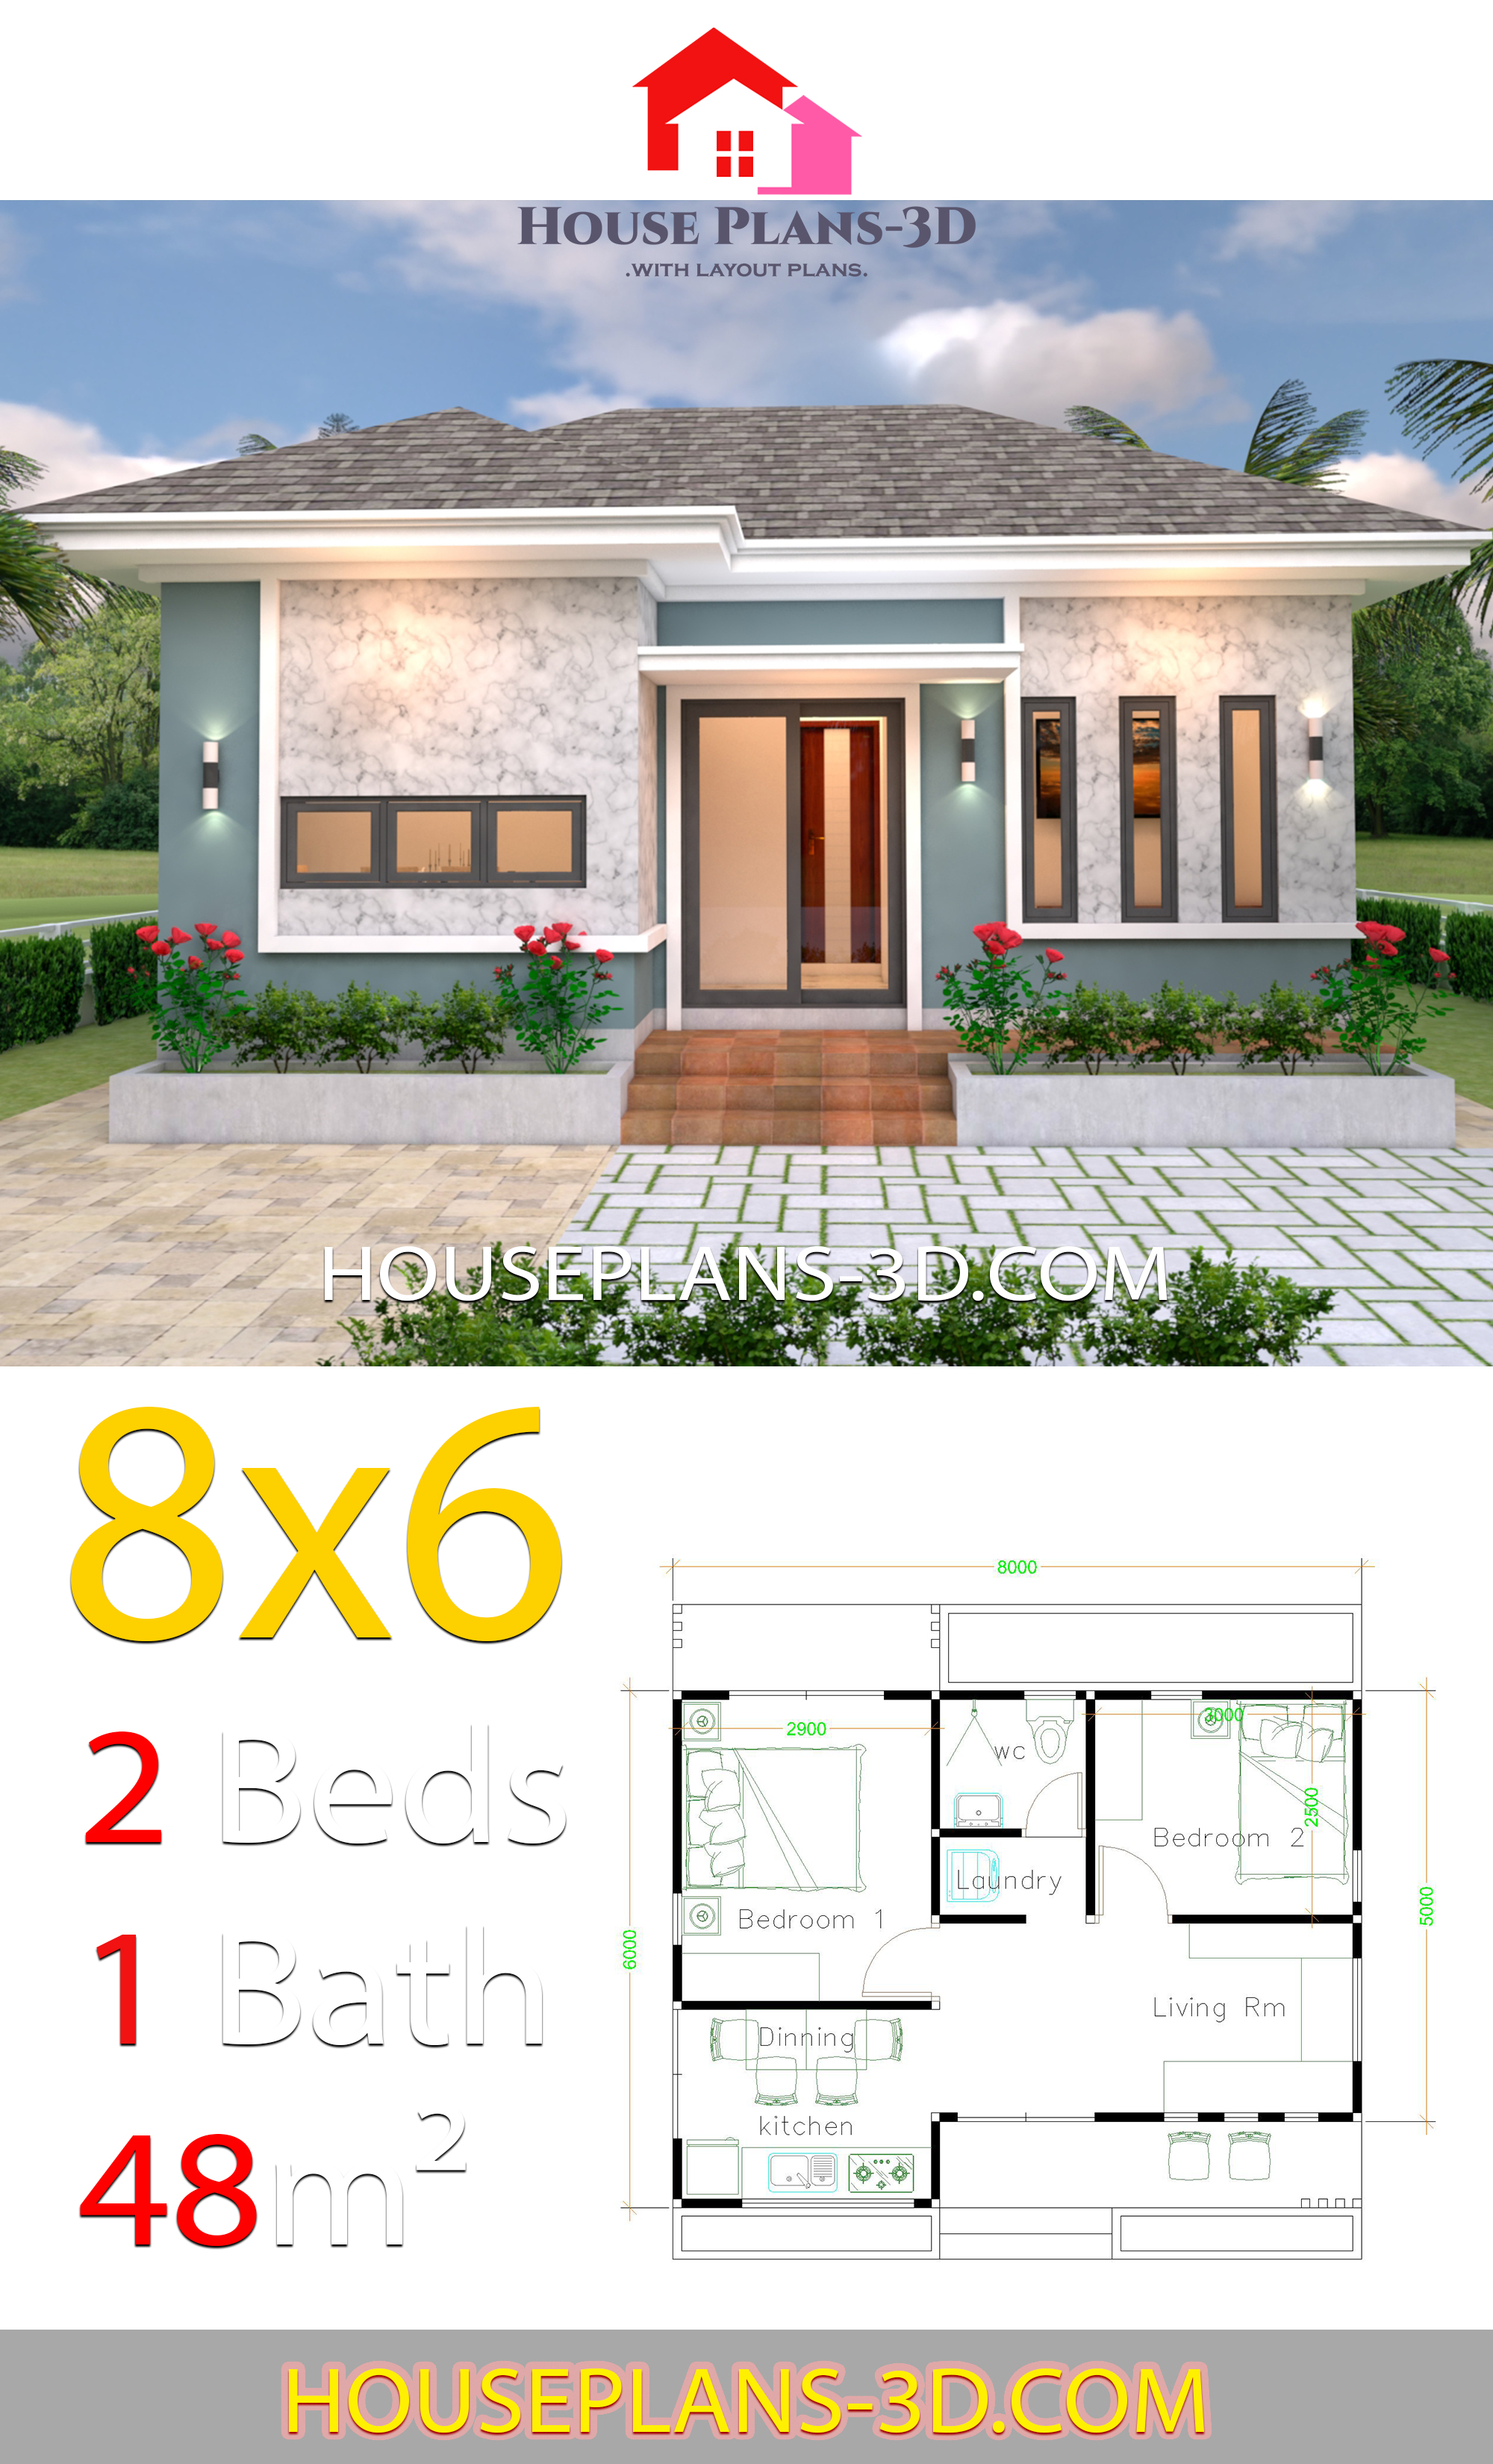 House Plans 3d 8x6 with 2 Bedrooms Hip roof - House Plans 3D